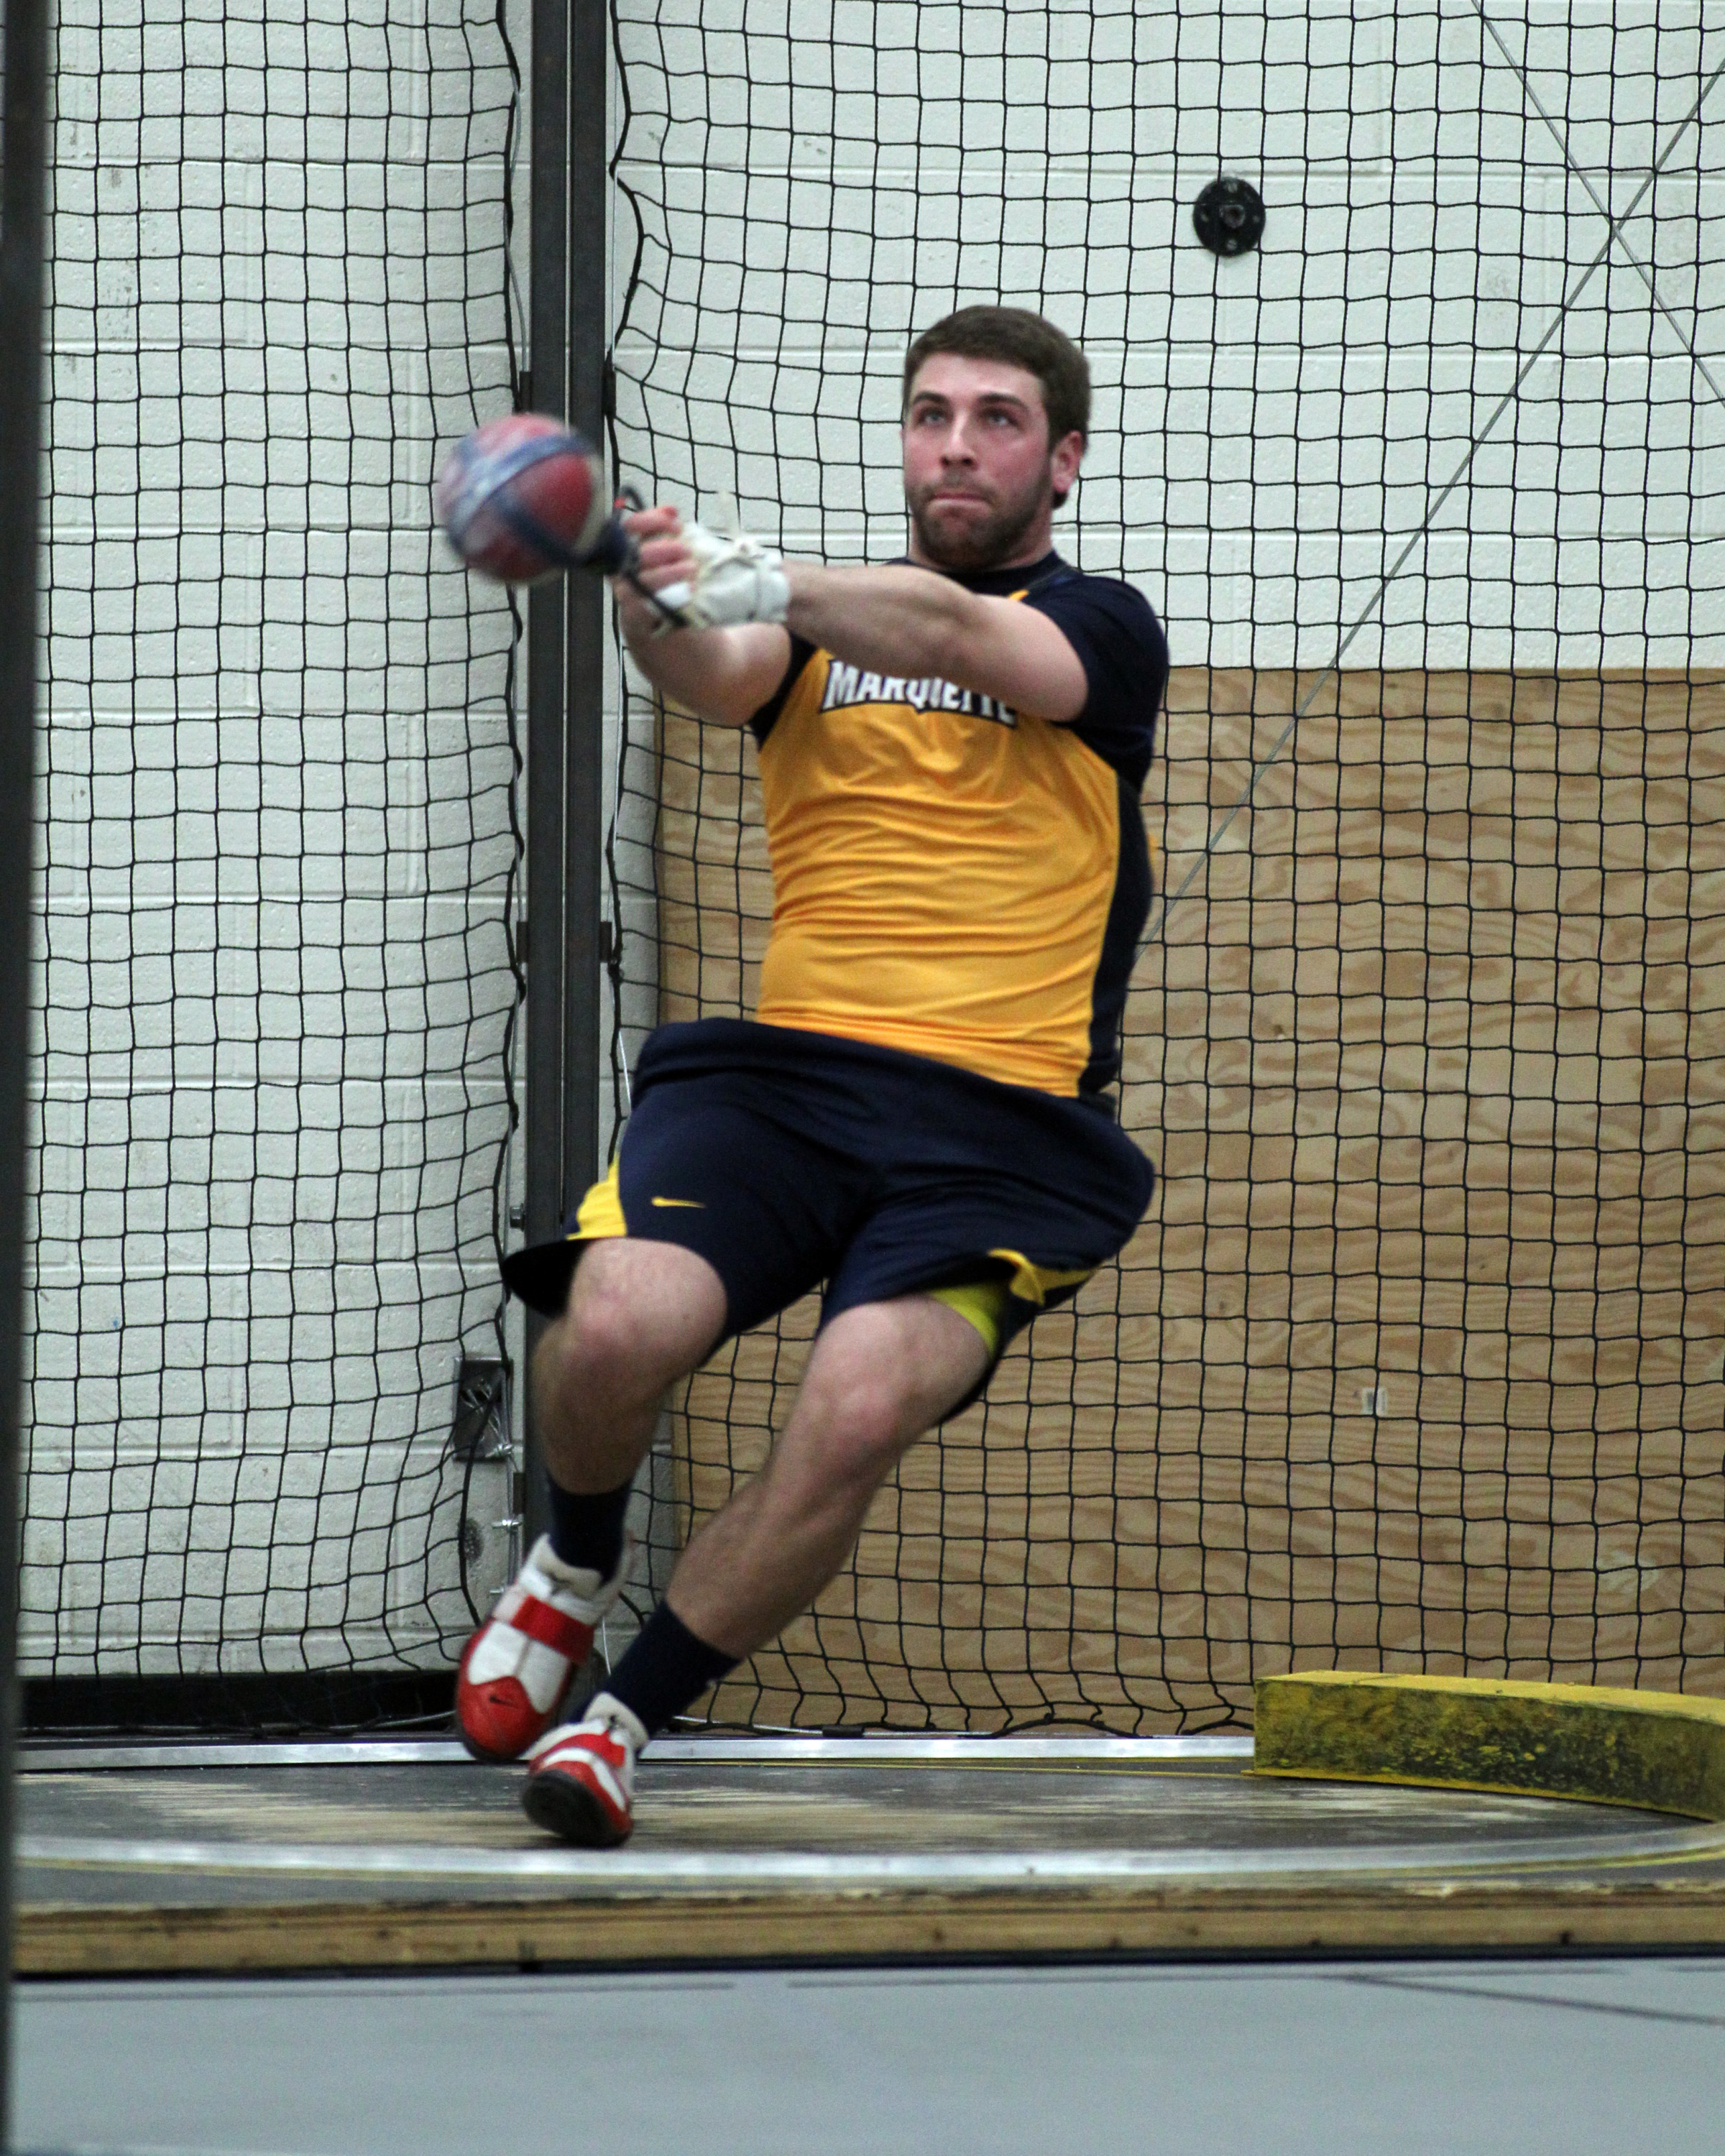 Bret Hardin won the weight throw at Milwaukee.